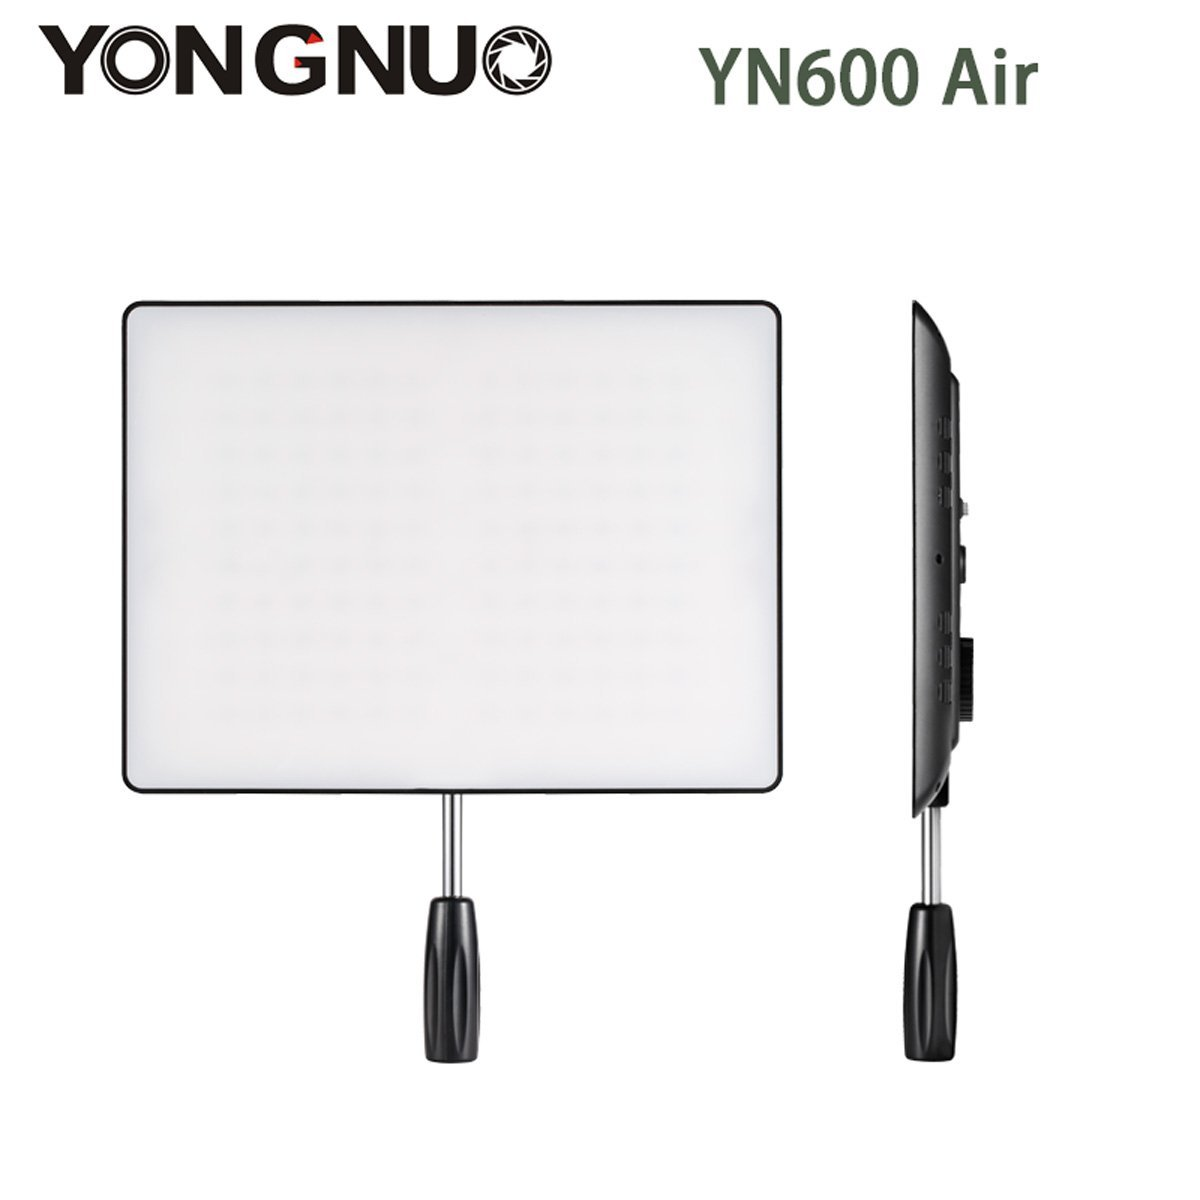 YONGNUO <font><b>YN600</b></font> <font><b>Air</b></font> Ultra Thin LED Camera Video Light 3200K-5500K for Canon for Nikon for Pentax for Olympas DSLR & Camcorder image